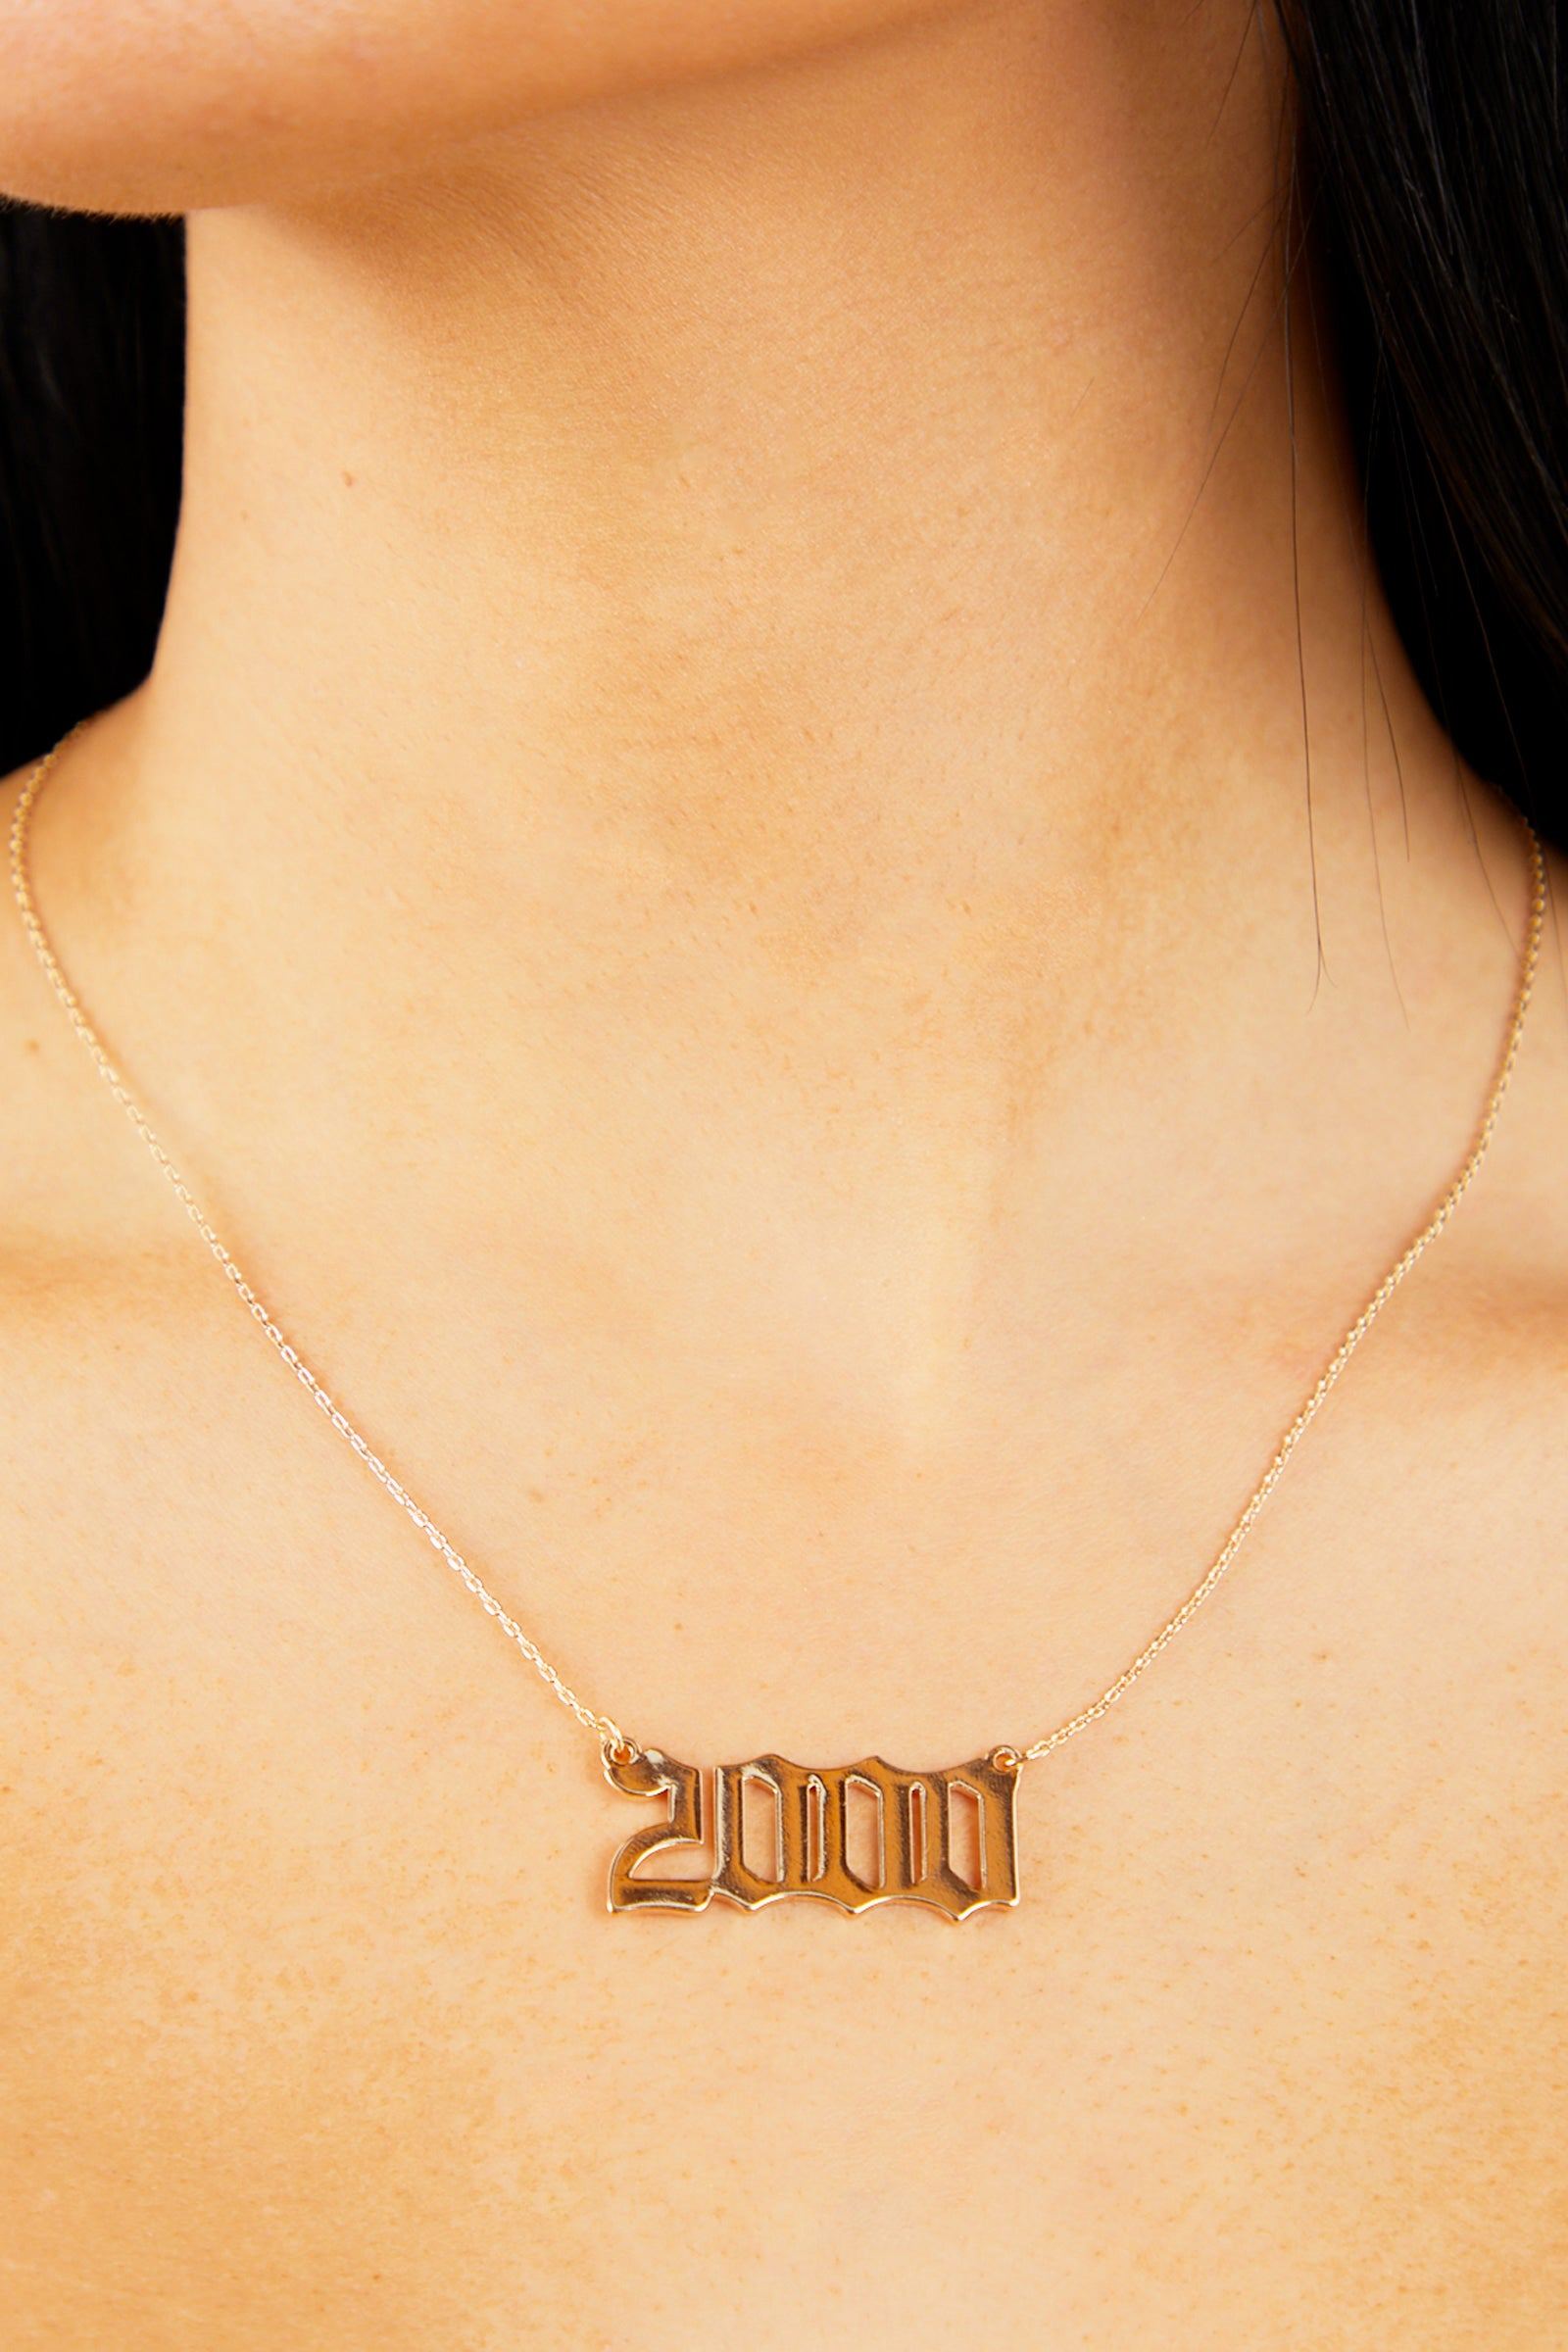 2000 Pendant Necklace - Gold